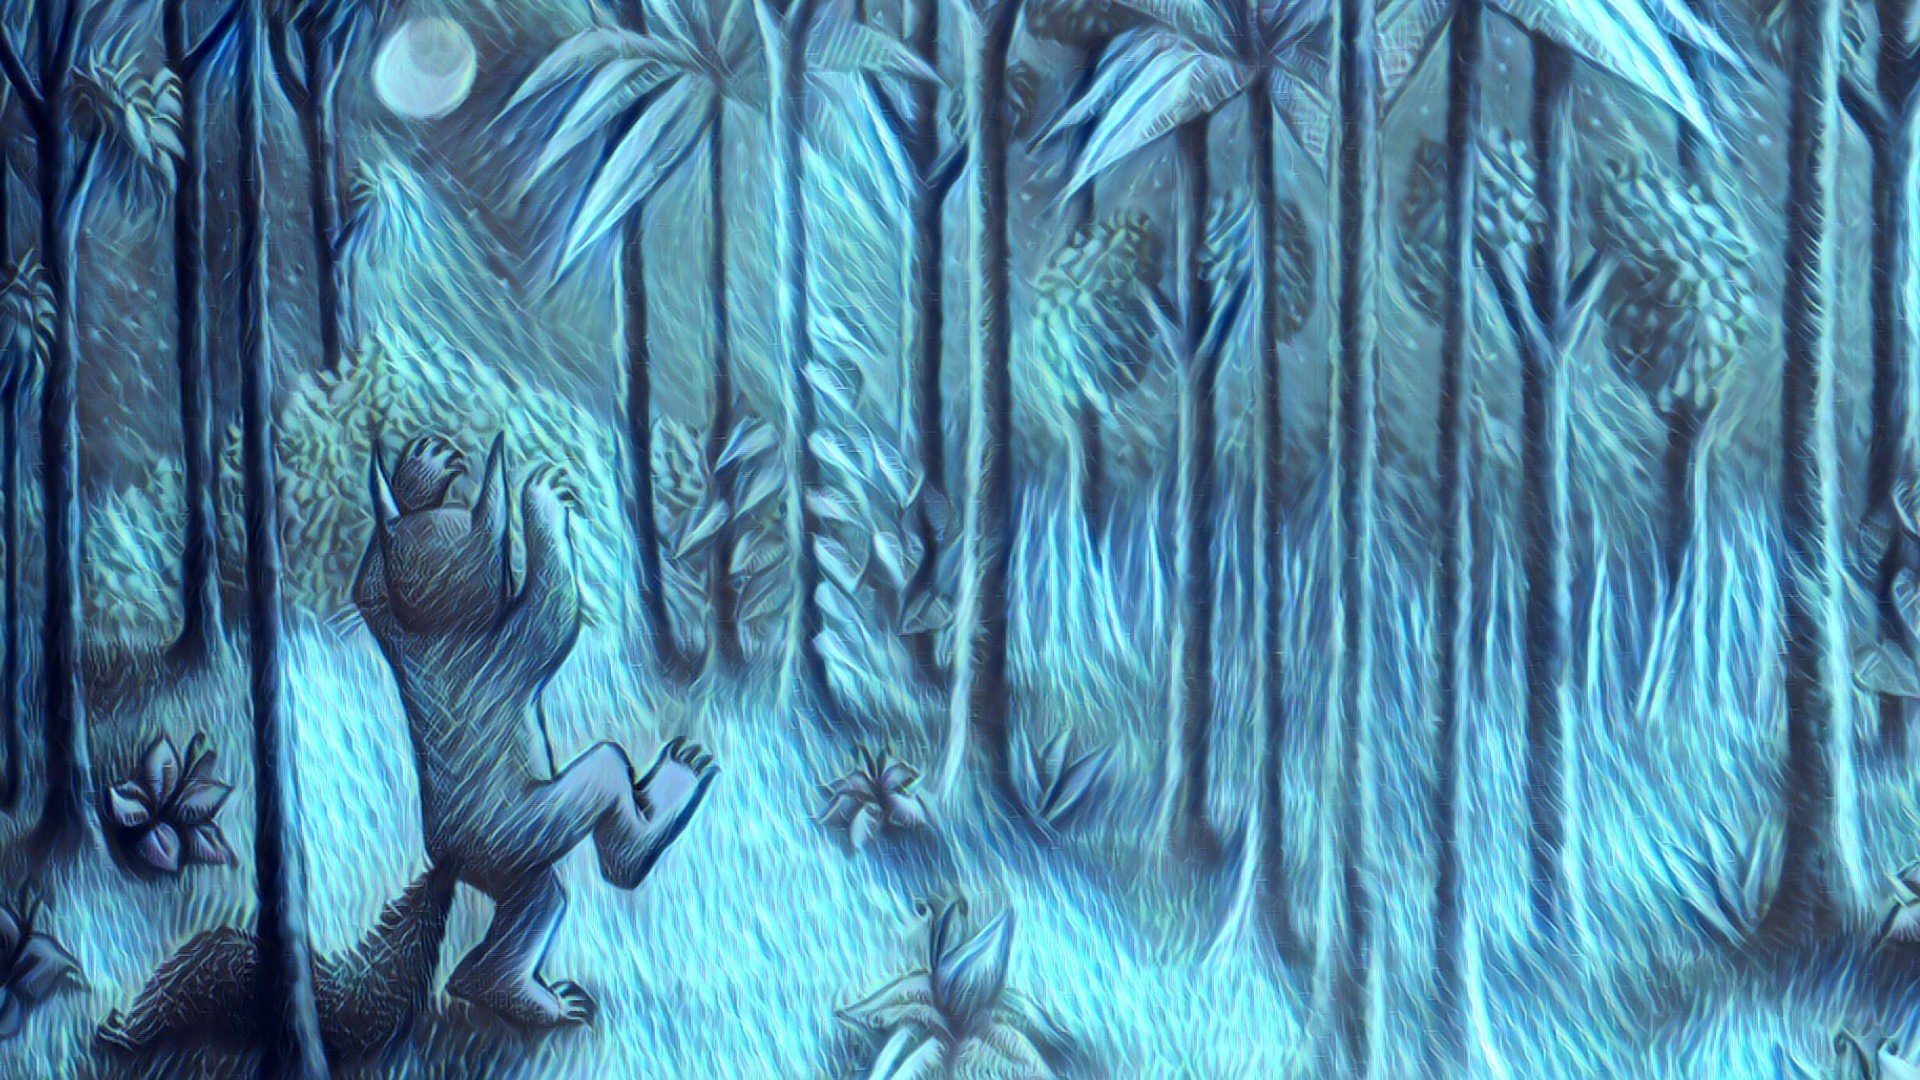 Maurice Sendak Where The Wild Things Are Night Forest